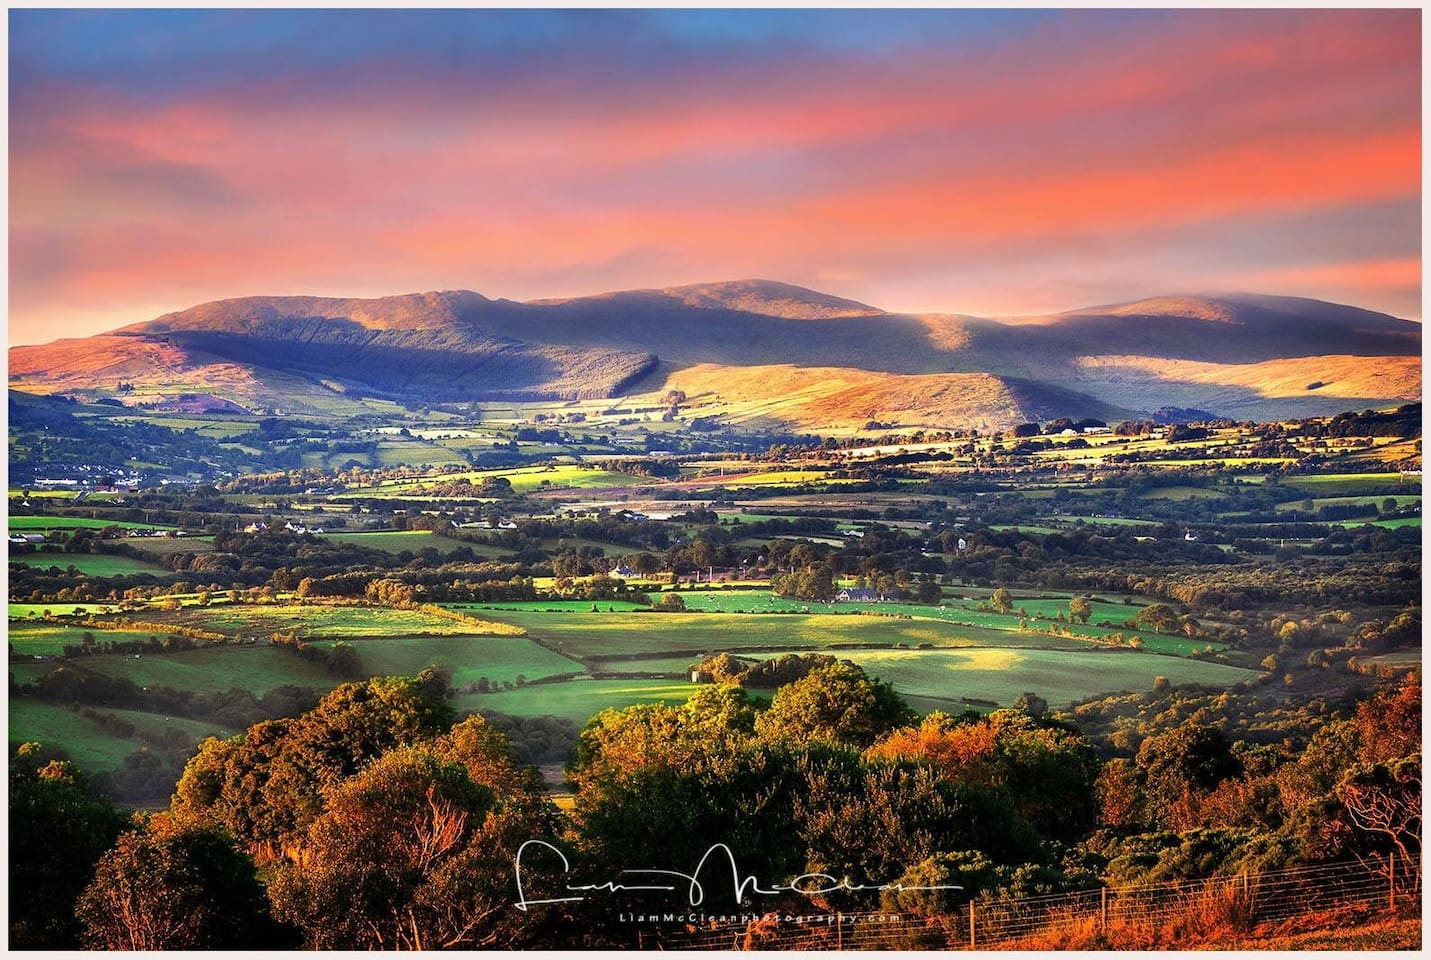 Beautiful local scenery- photo by local photographer Liam McClean